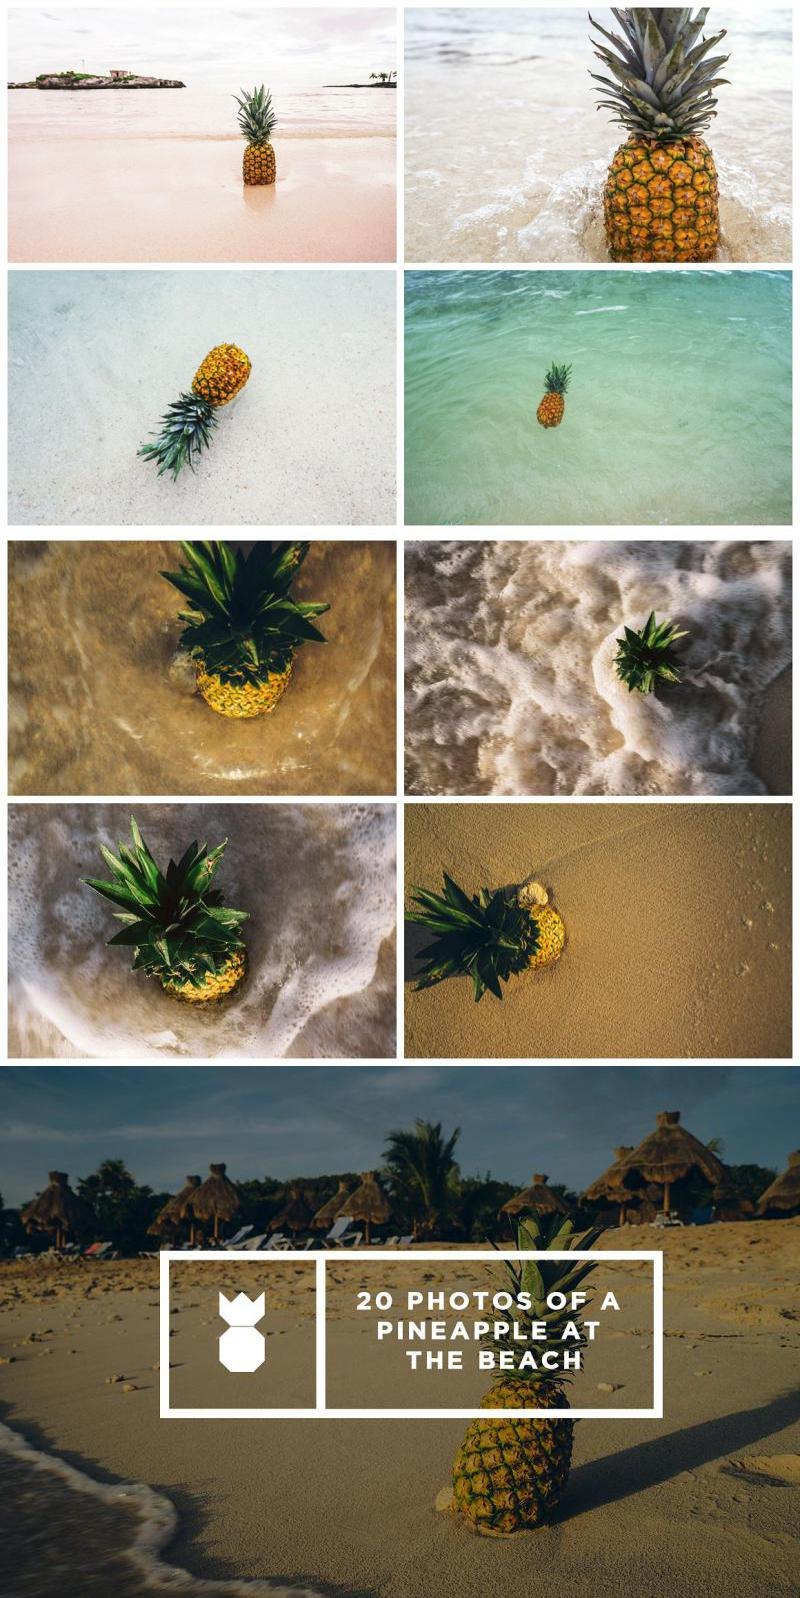 Pineapple's Day at the Beach